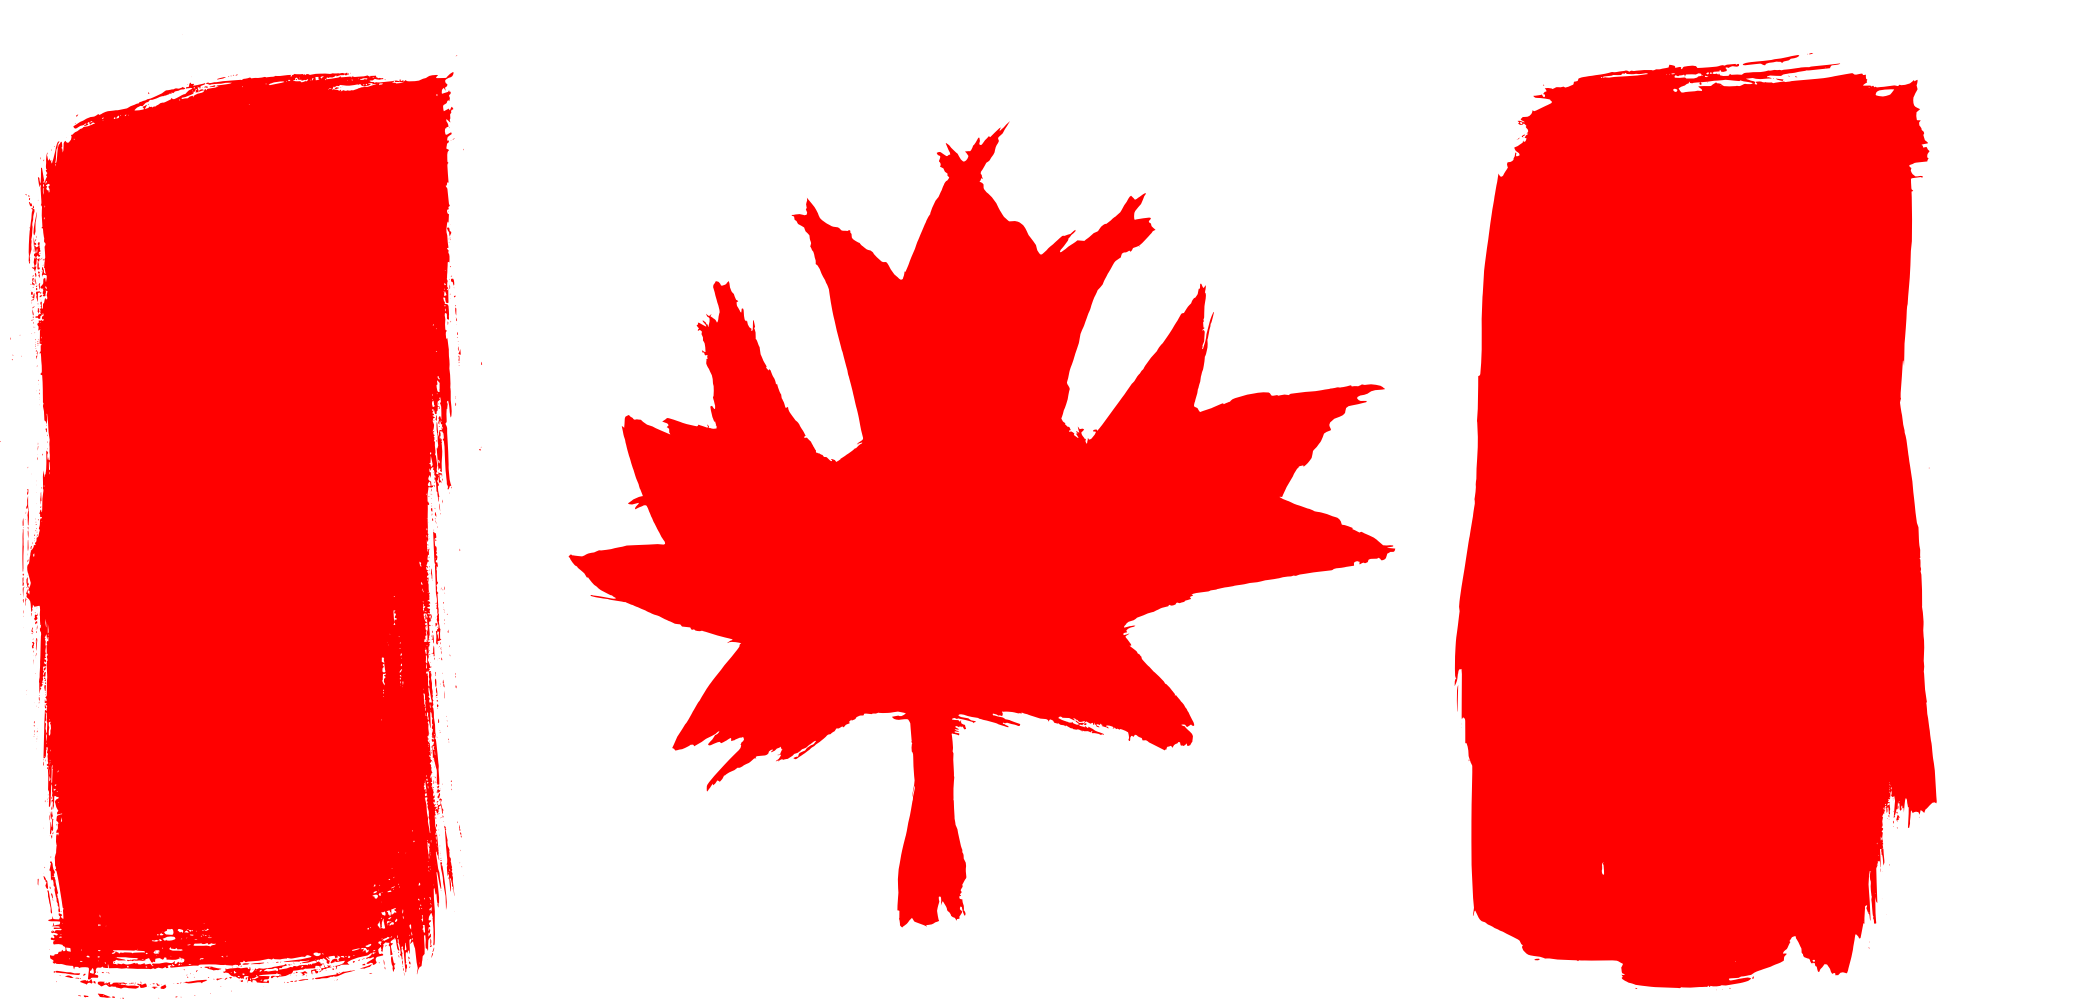 Solidworks design and modeling in Canada